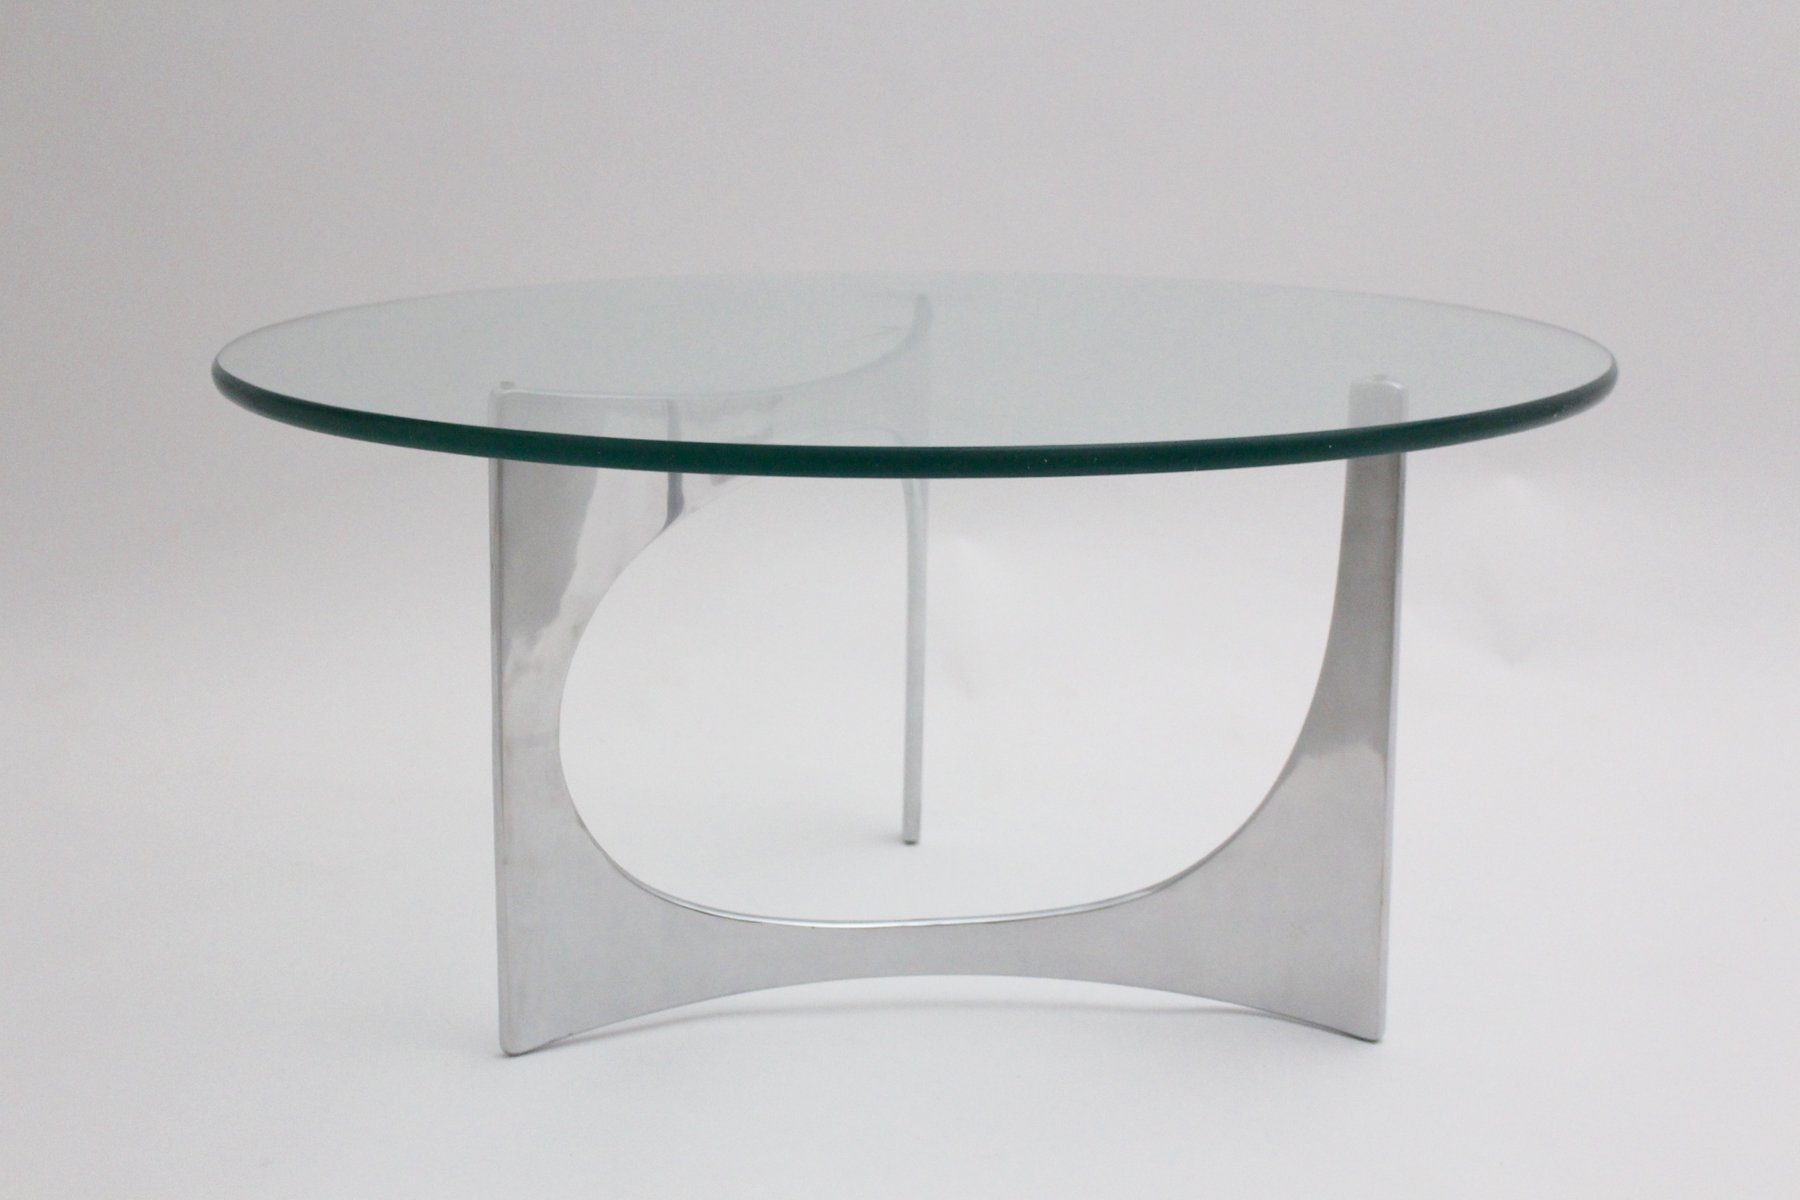 Vintage German Round Glass Coffee Table by Knut Hesterberg 1970s